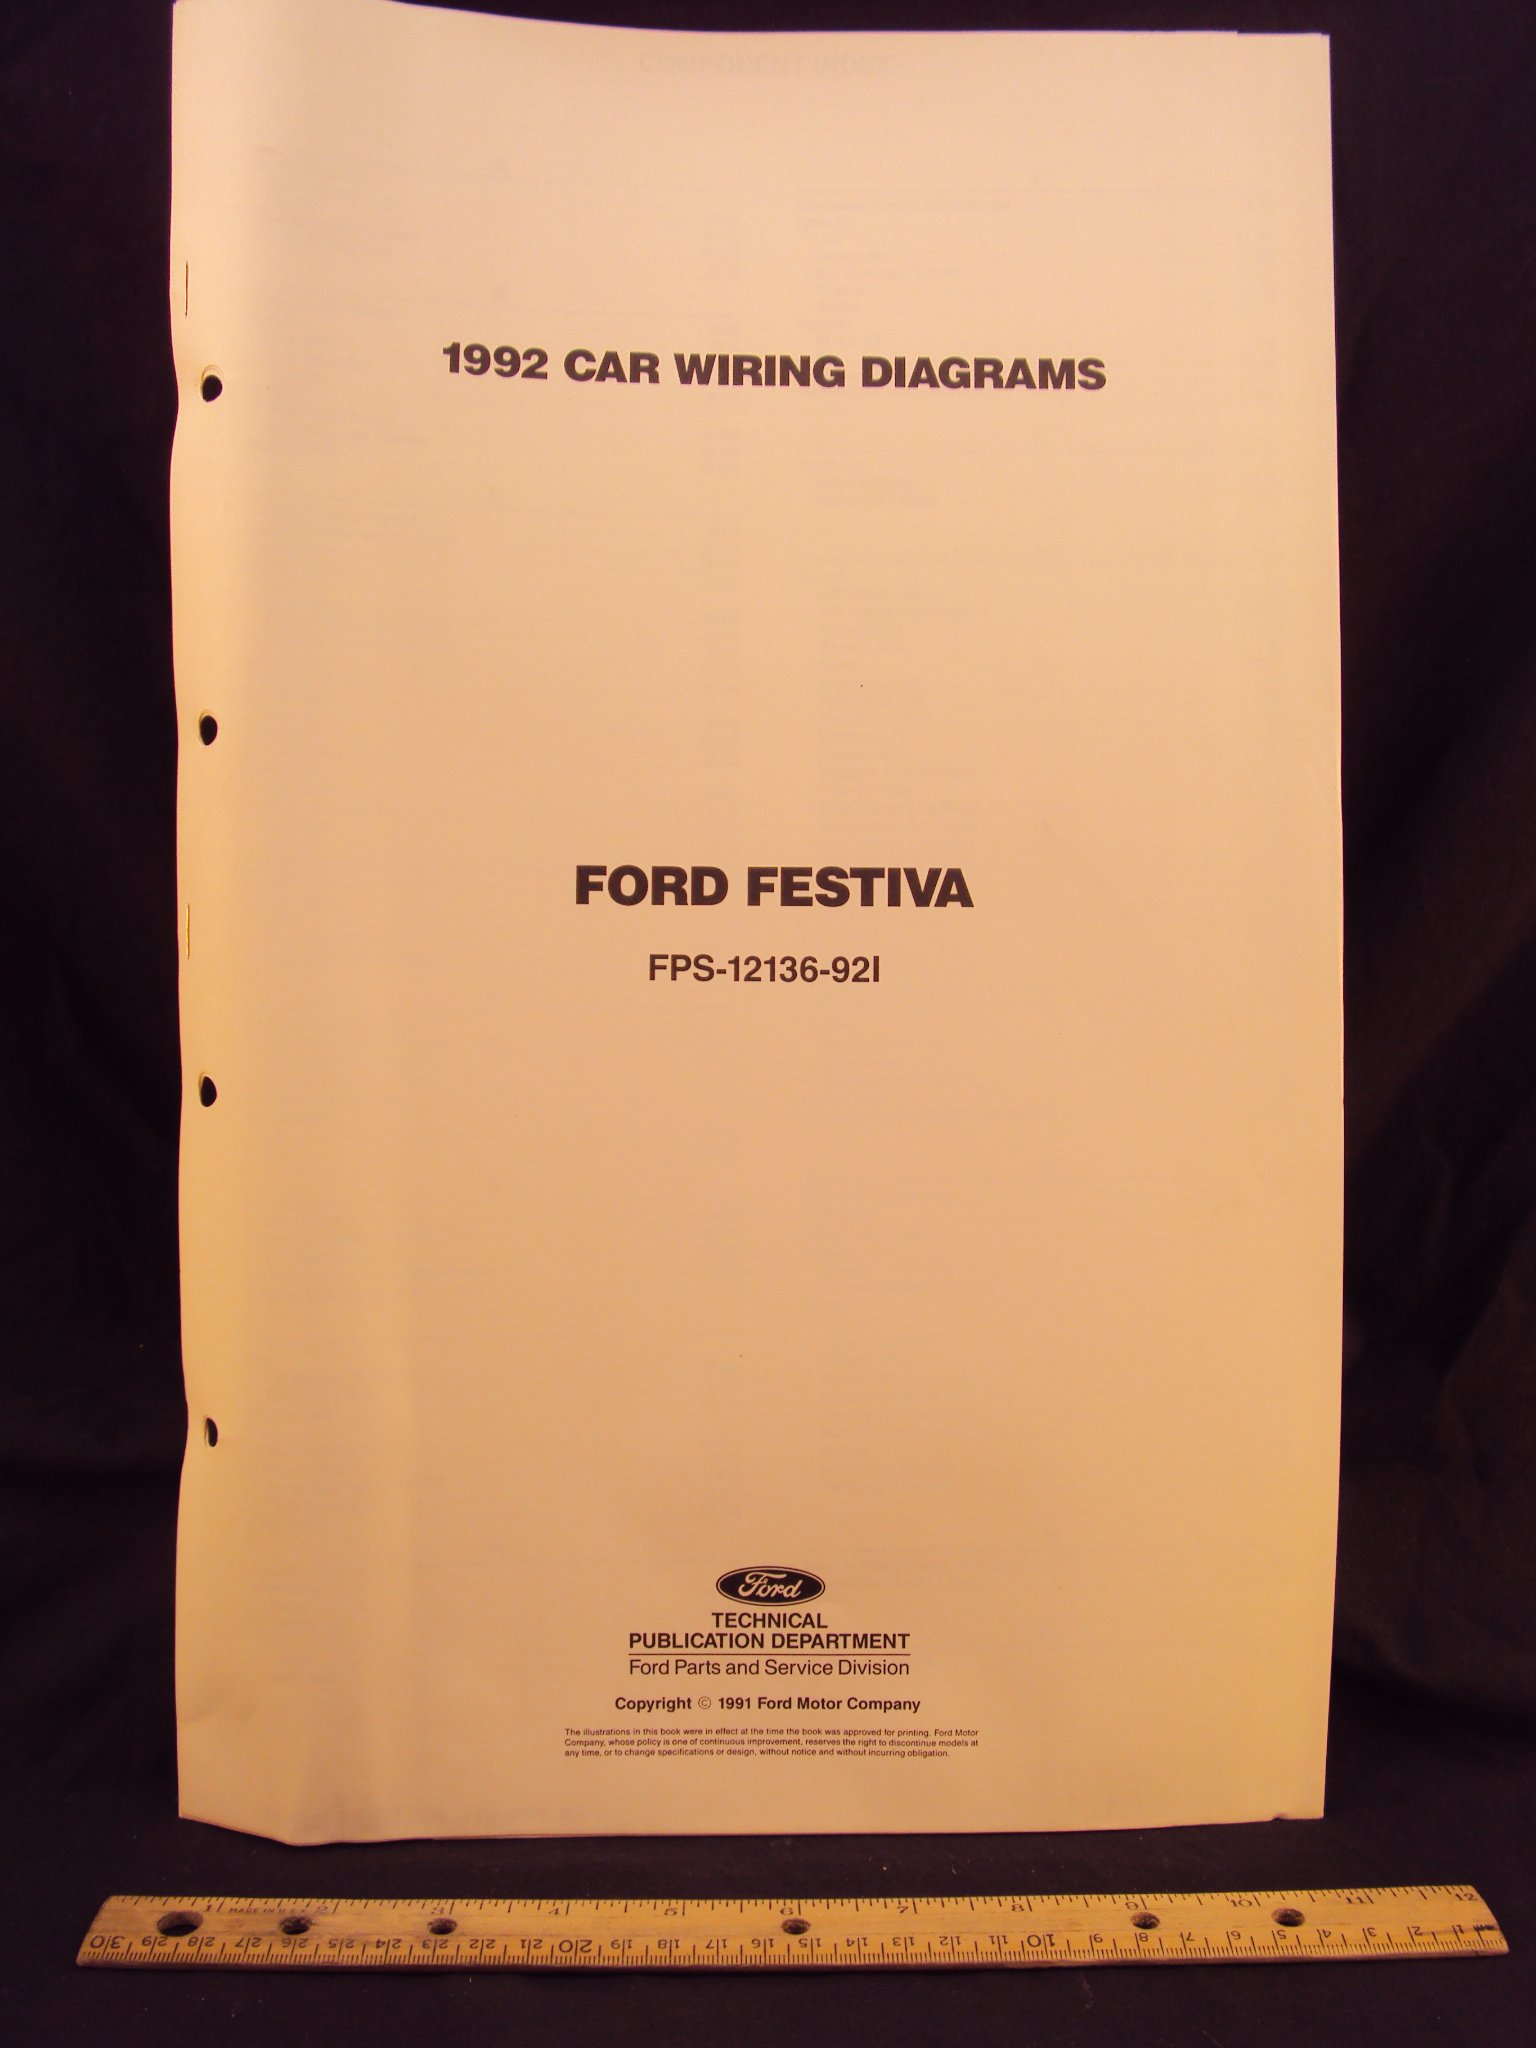 1992 ford festiva electrical wiring diagrams schematics 1992 Chevy Cavalier Wiring Diagram